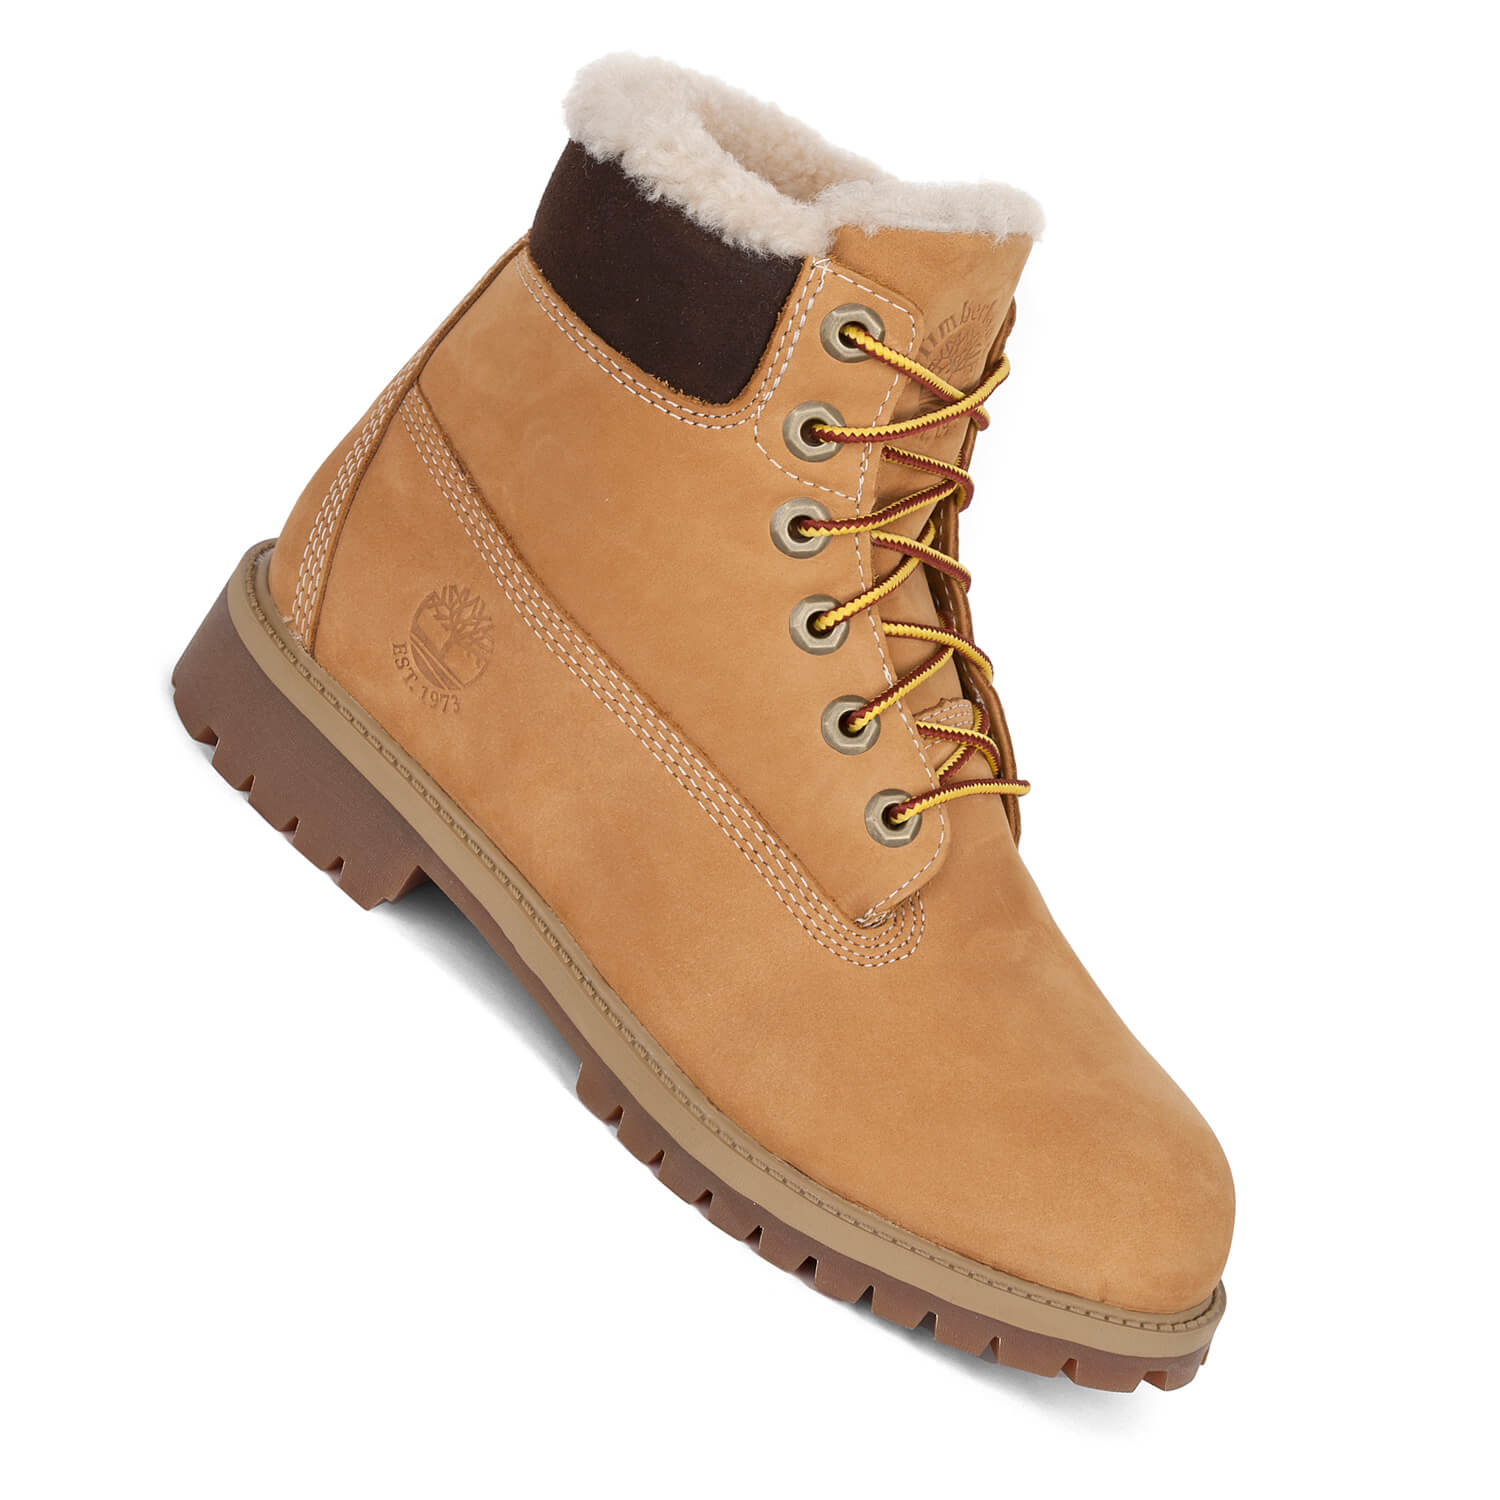 best place factory price reasonable price Timberland Kinderstiefel mit Fell WP Sherling Boot wheat